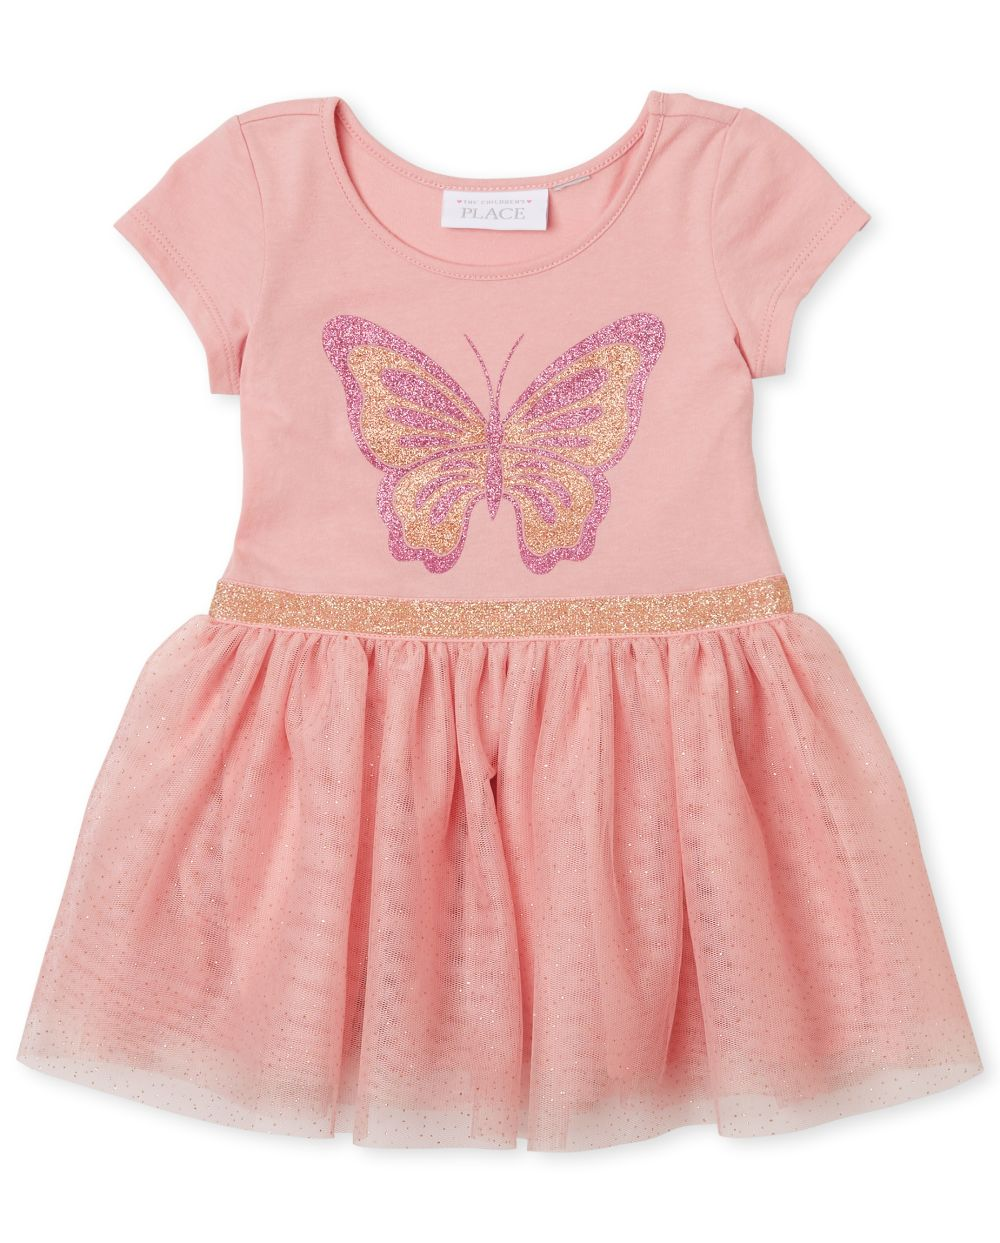 Baby And Toddler Girls Glitter Butterfly Knit To Woven Tutu Dress